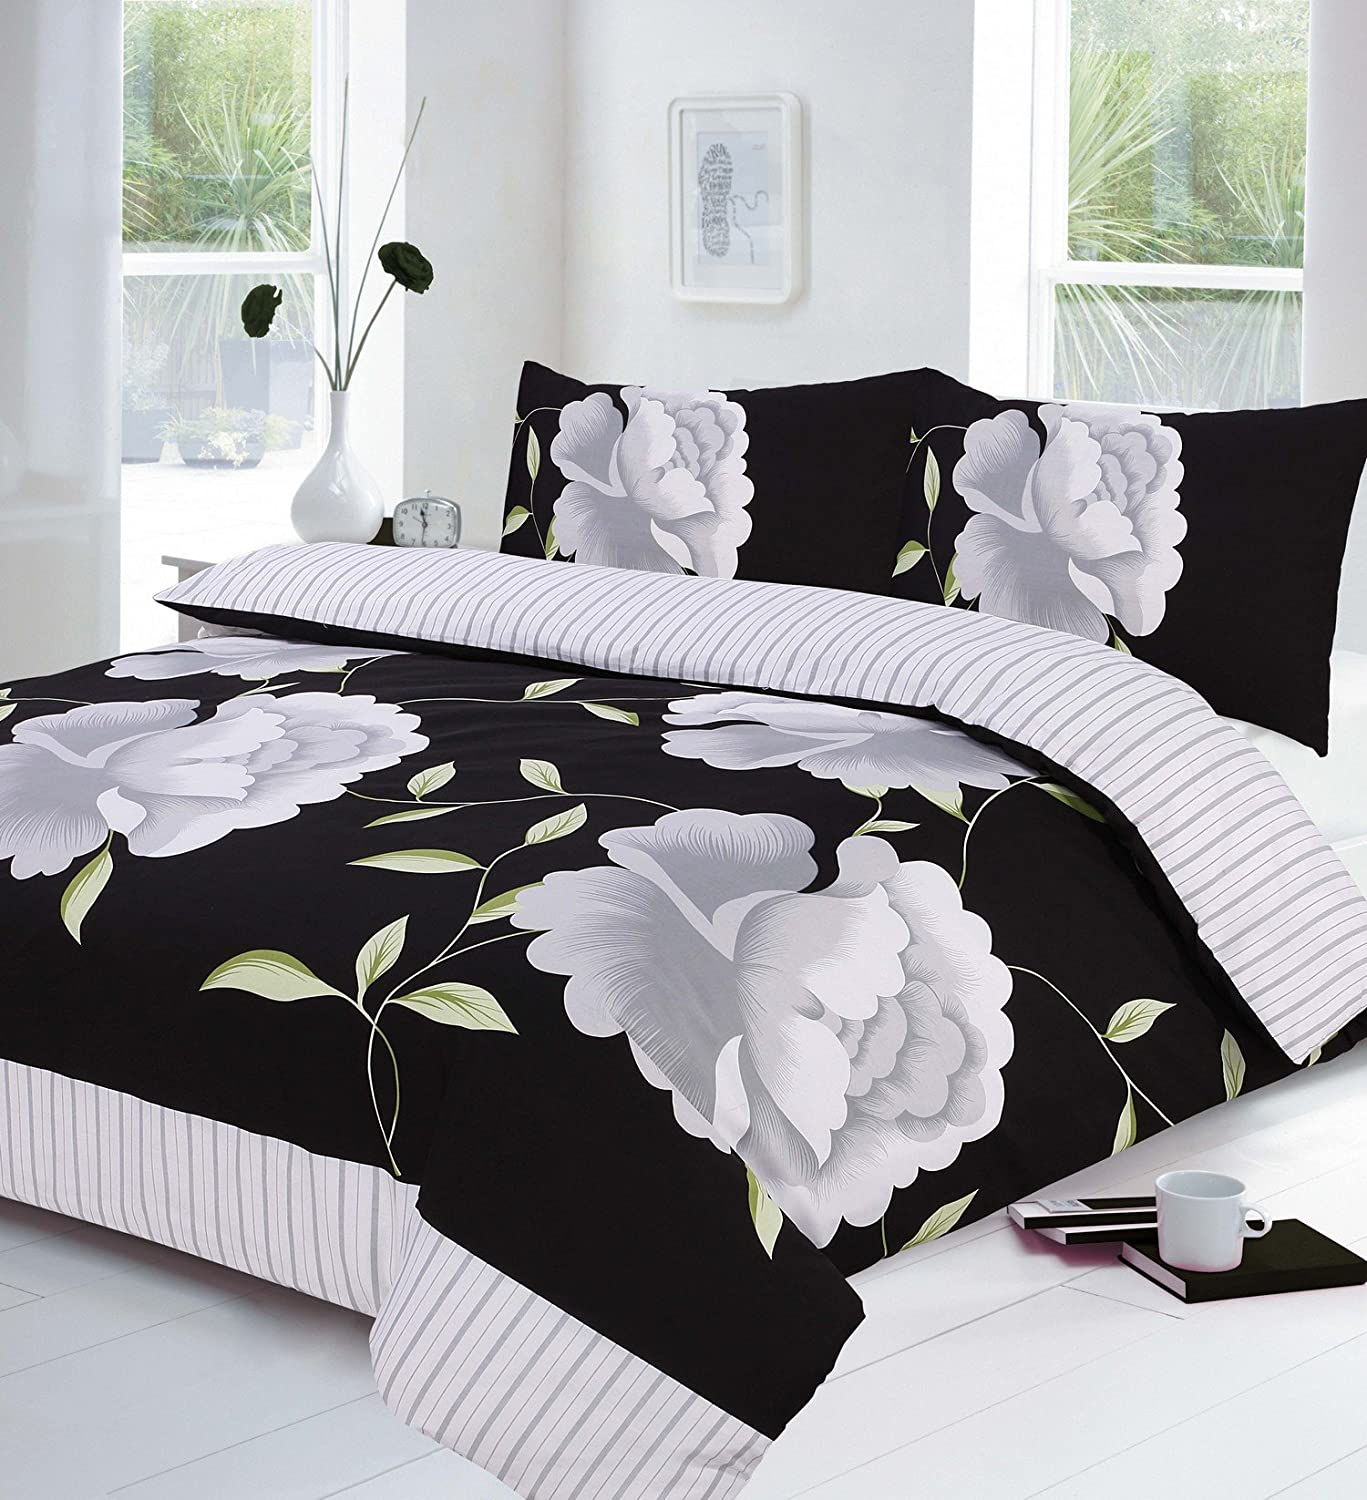 Black White And Grey Super King Size Duvet Quilt Cover Bedding